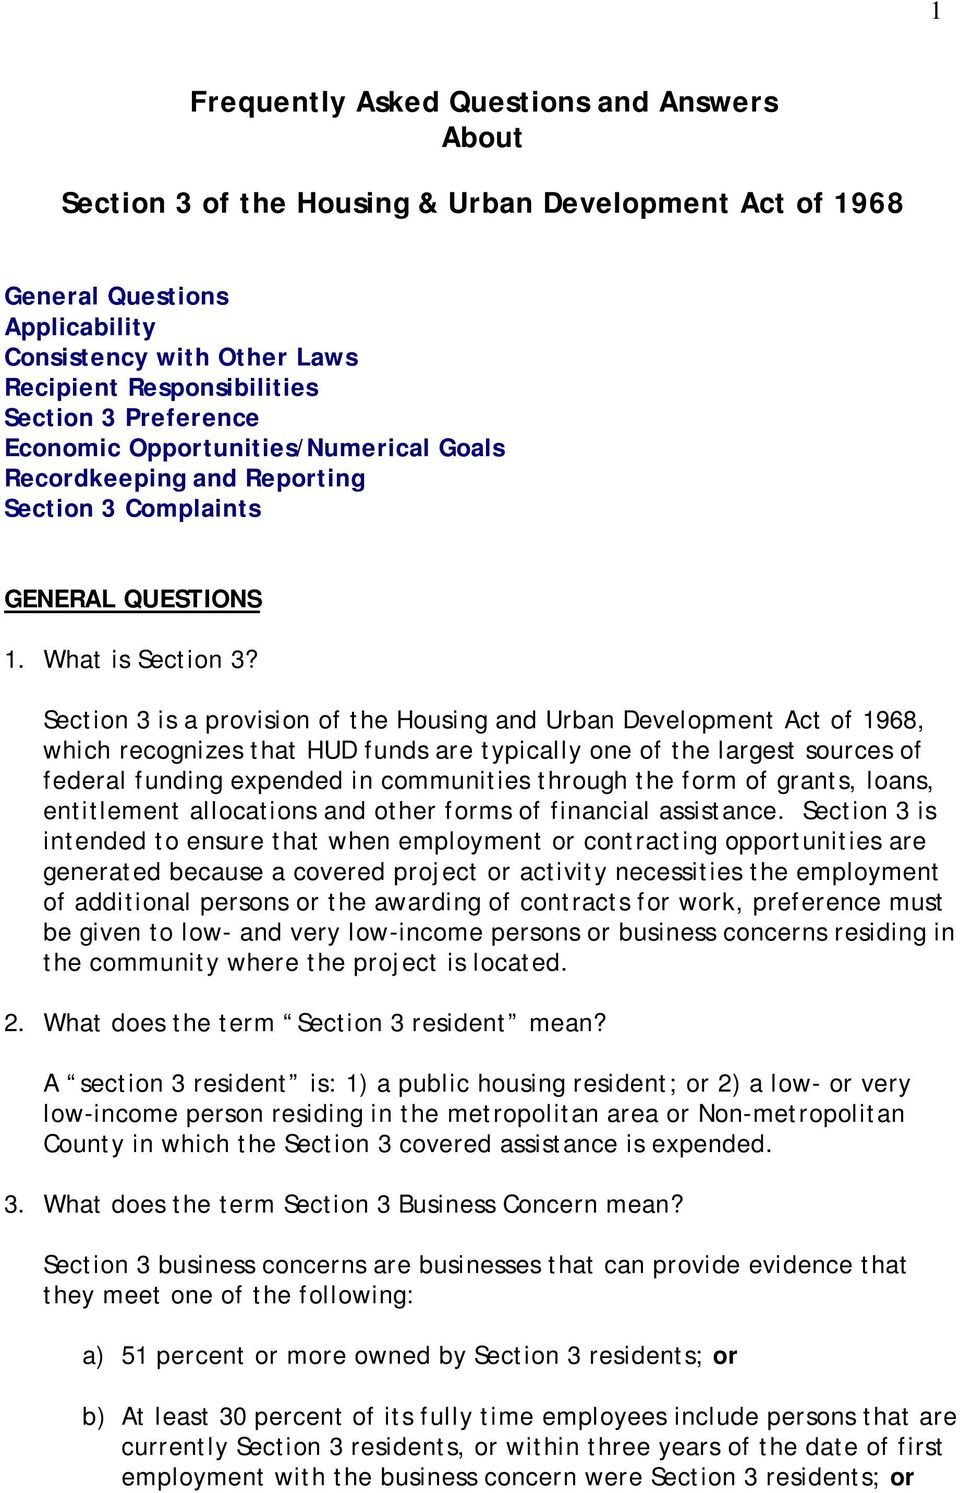 Section 3 is a provision of the Housing and Urban Development Act of 1968, which recognizes that HUD funds are typically one of the largest sources of federal funding expended in communities through